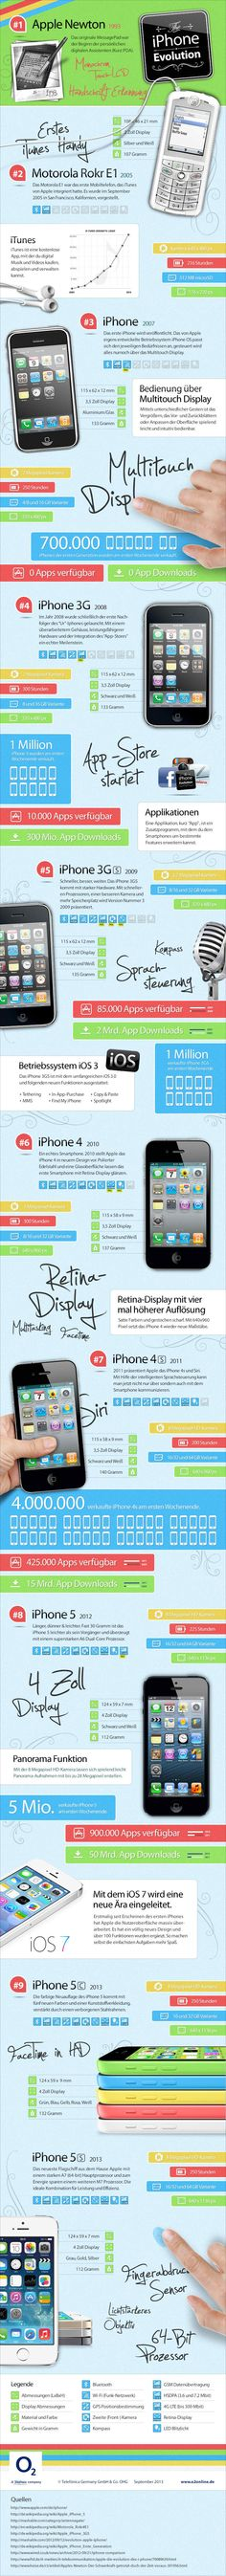 The iPhone Evolution 2013